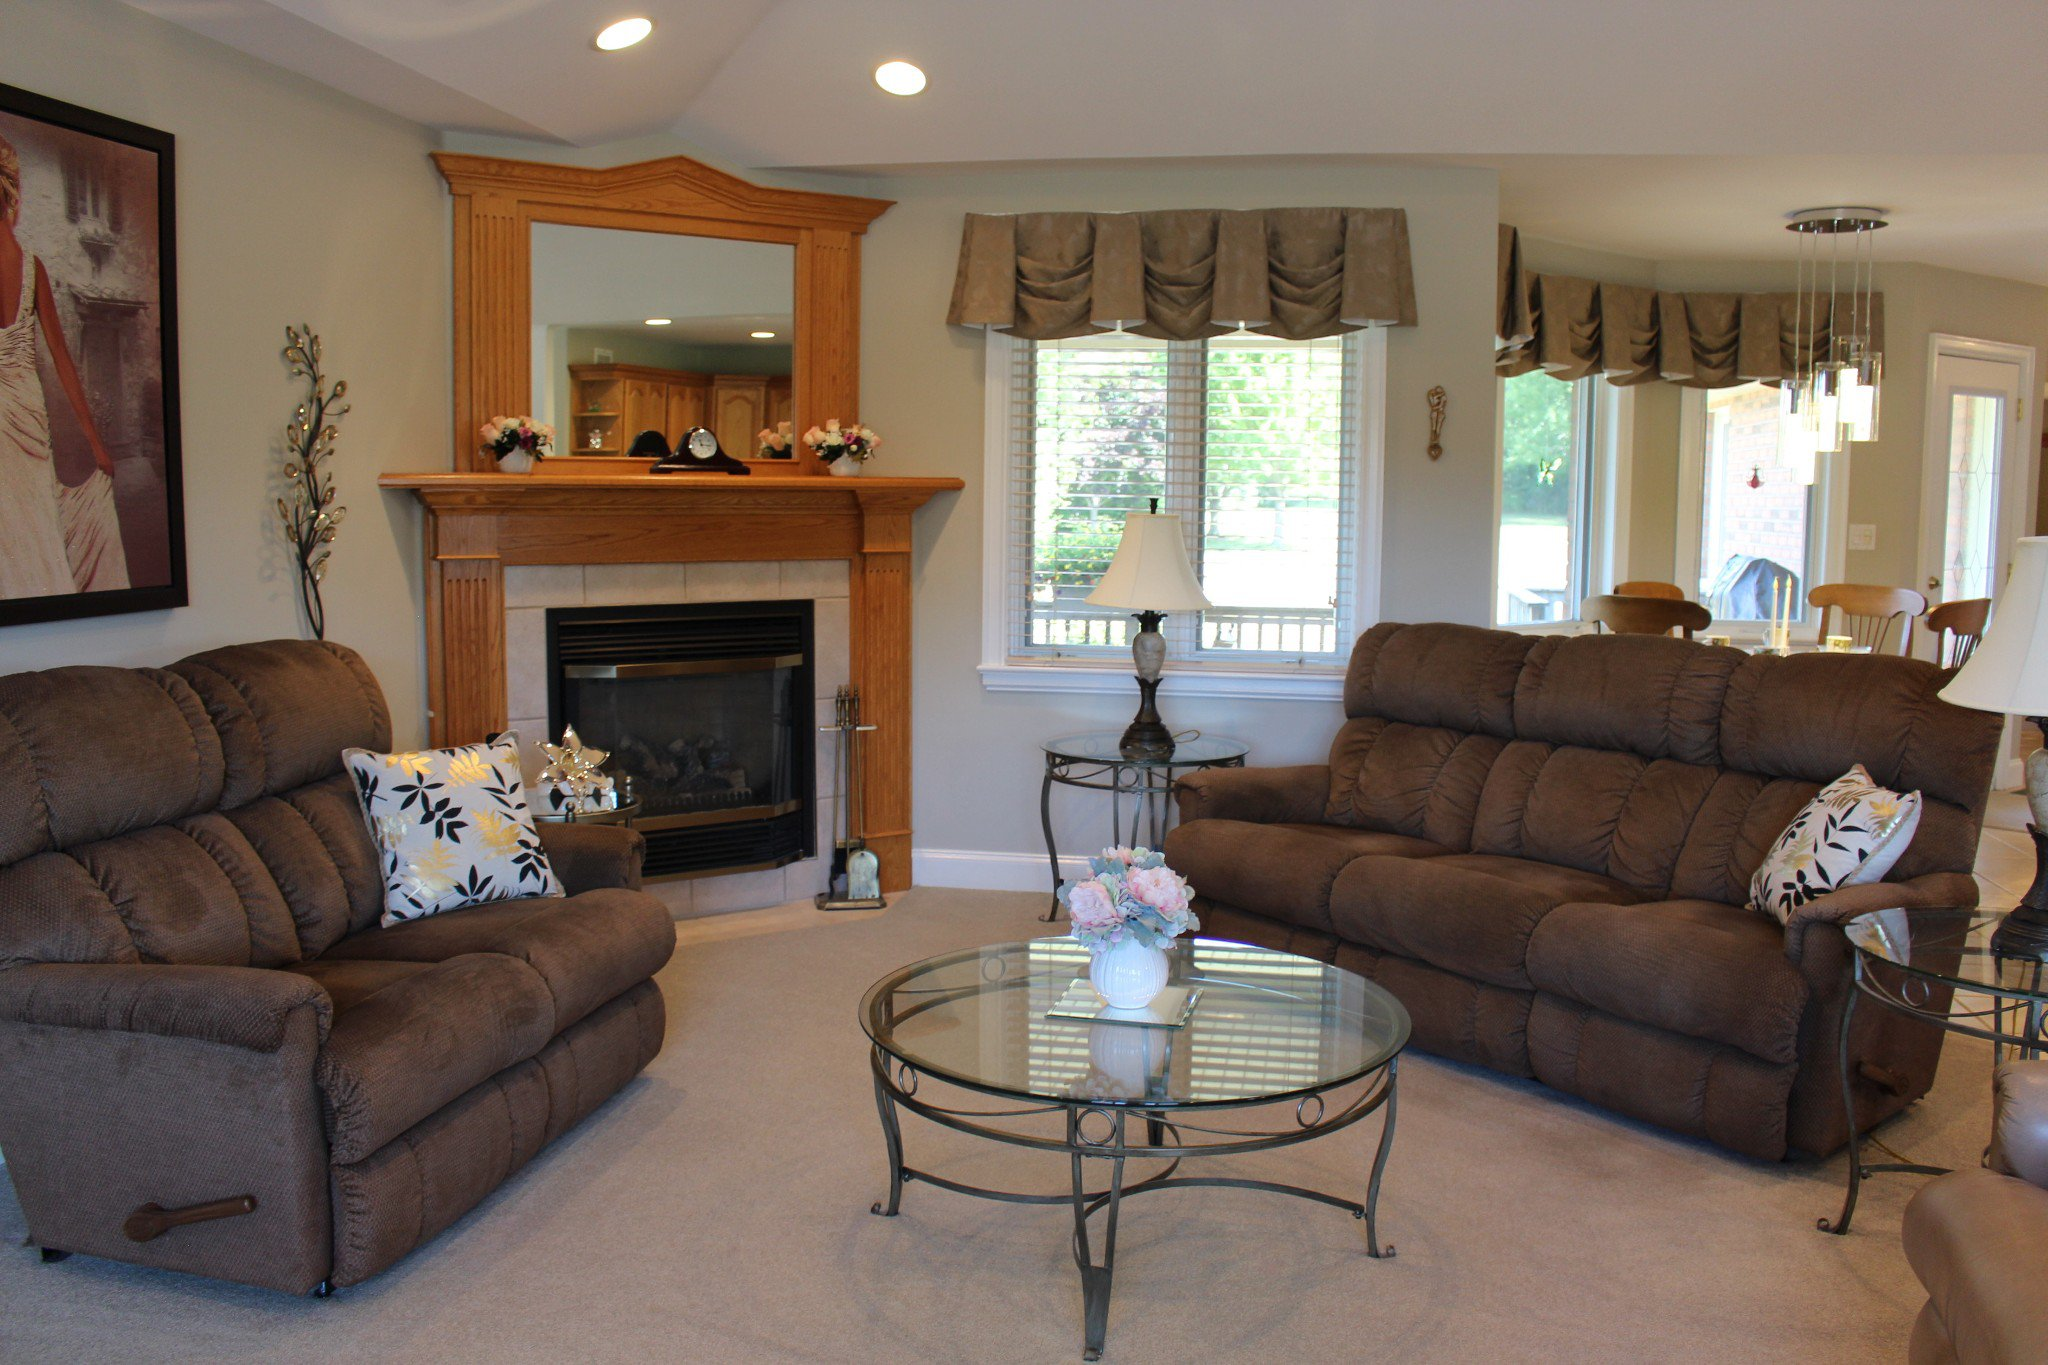 Photo 9: Photos: 159 Nawautin Drive in Grafton: Residential Detached for sale : MLS®# 40012652